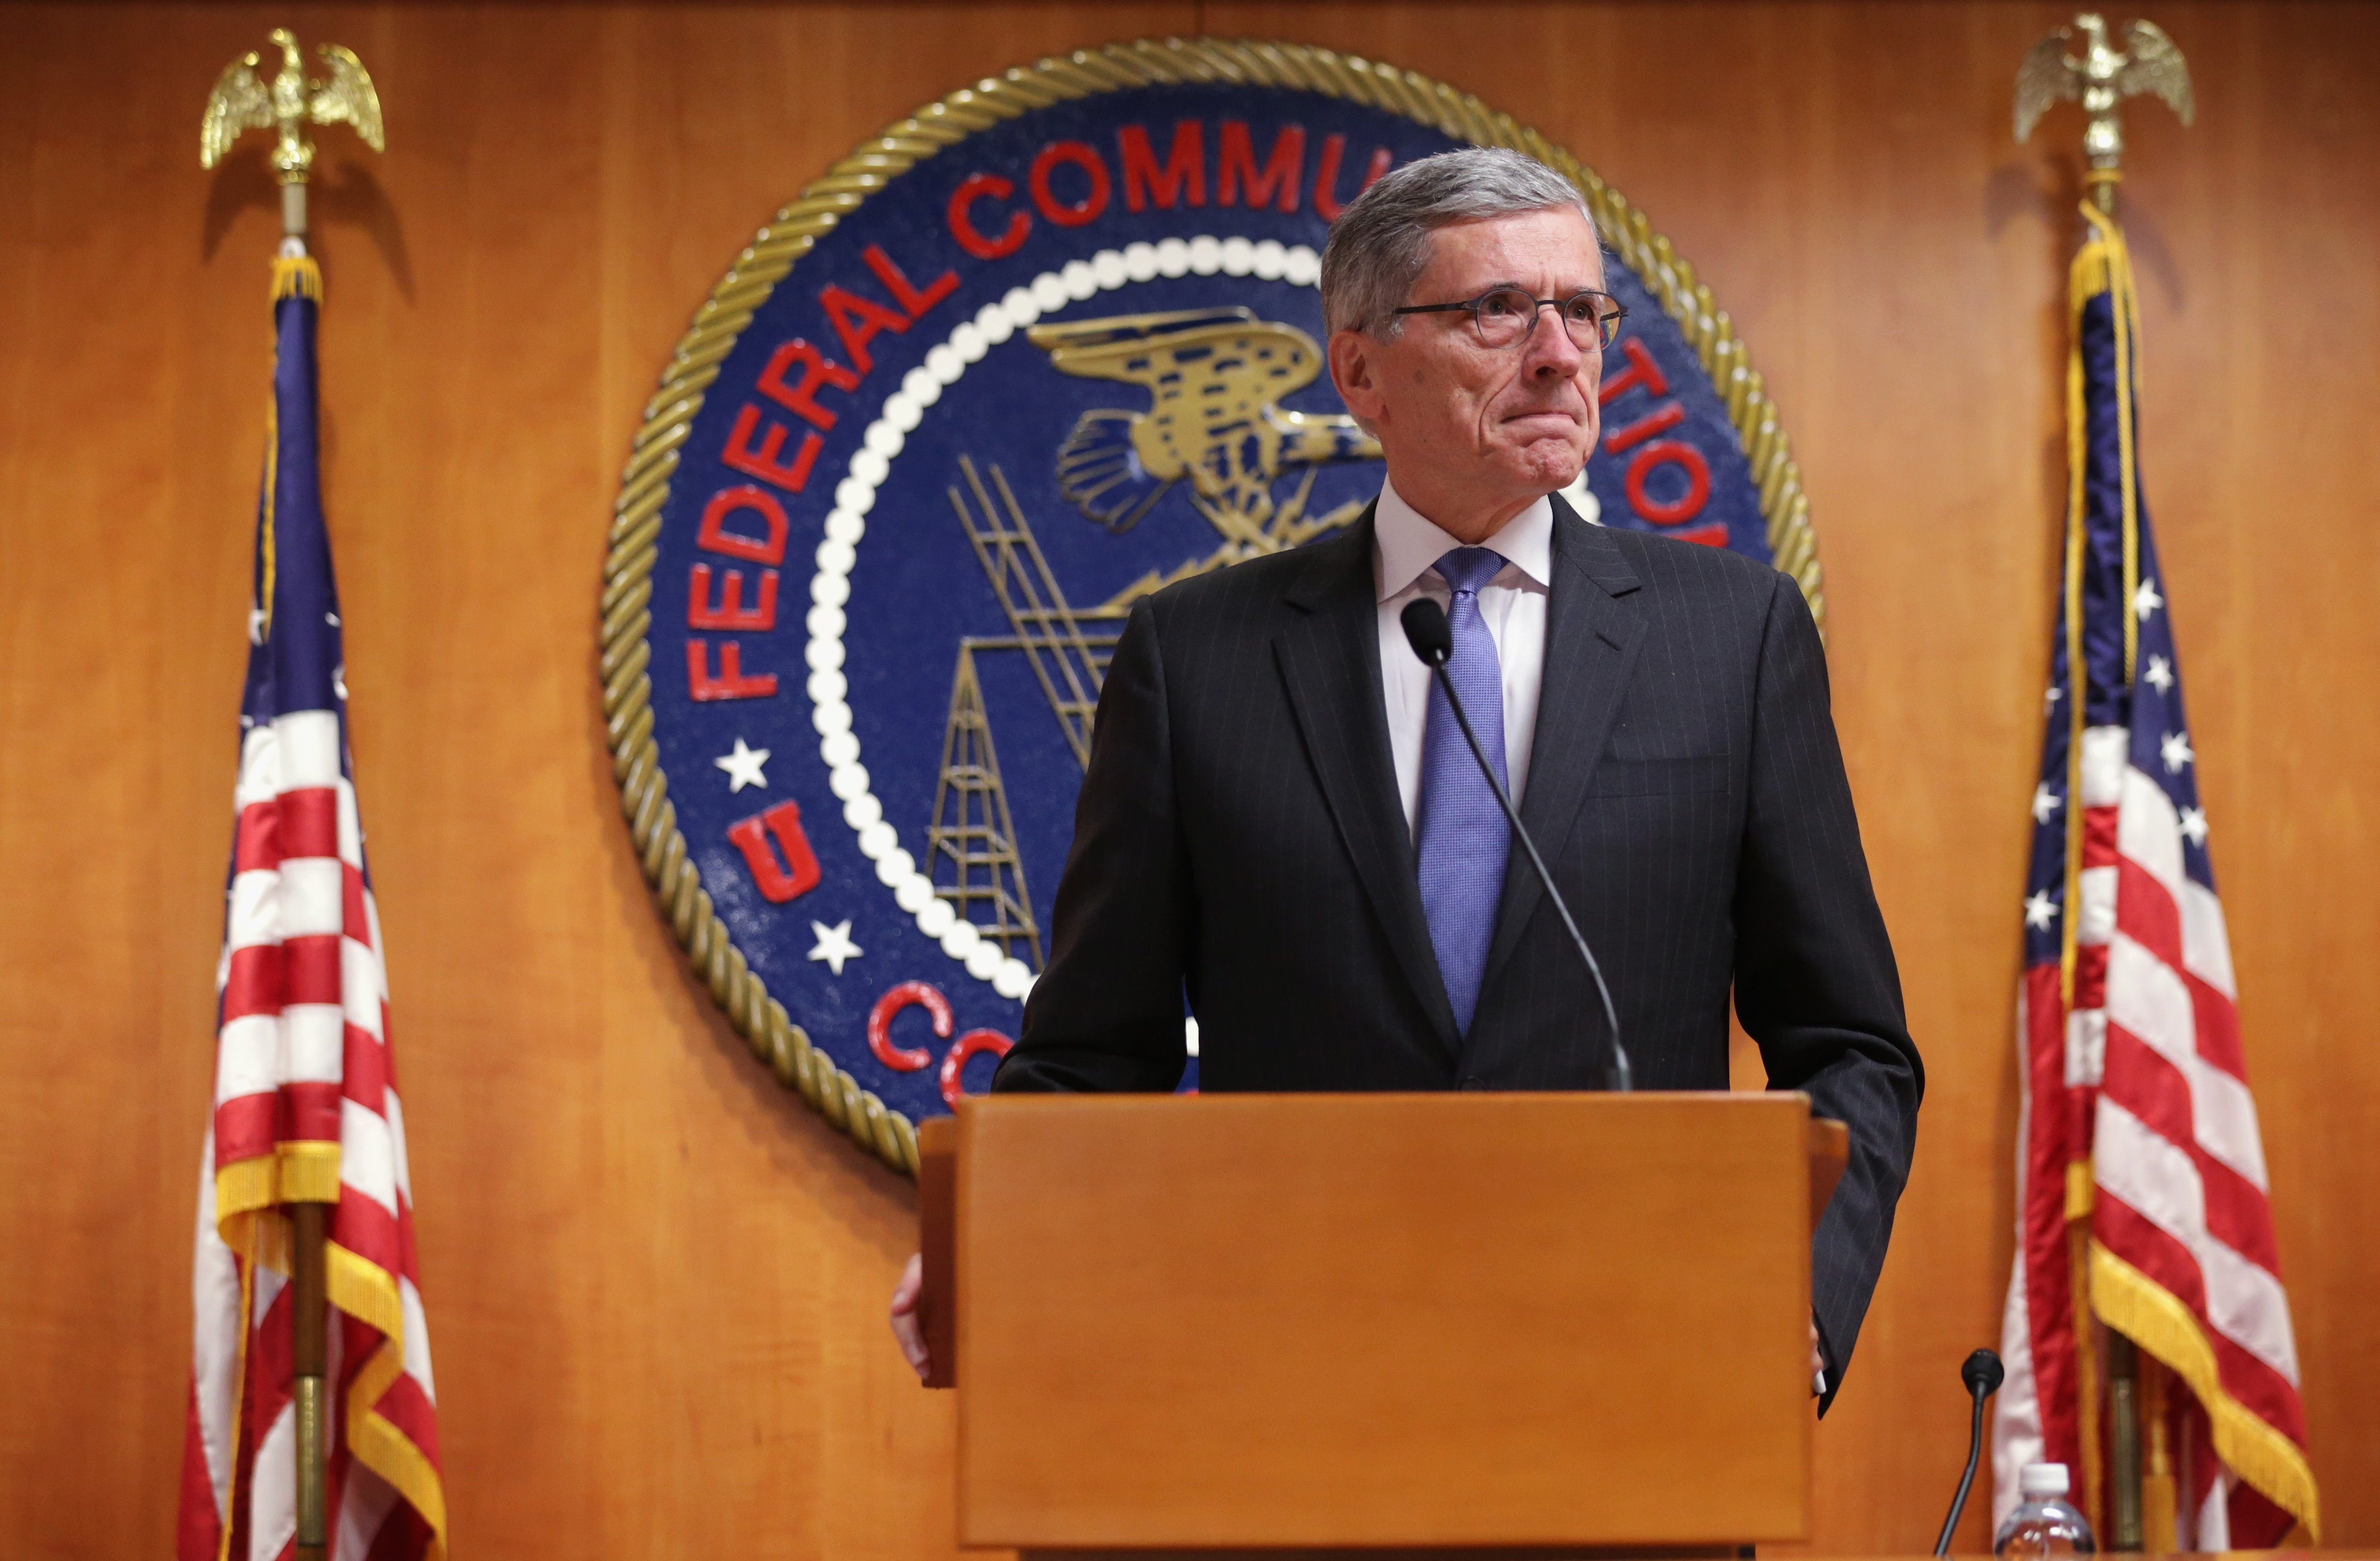 Federal Communications Commission (FCC) Chairman Tom Wheeler listens during a news conference after an open meeting to receive public comment on proposed open Internet notice of proposed rule-making and spectrum auctions on May 15, 2014 at the FCC headquarters in Washington.